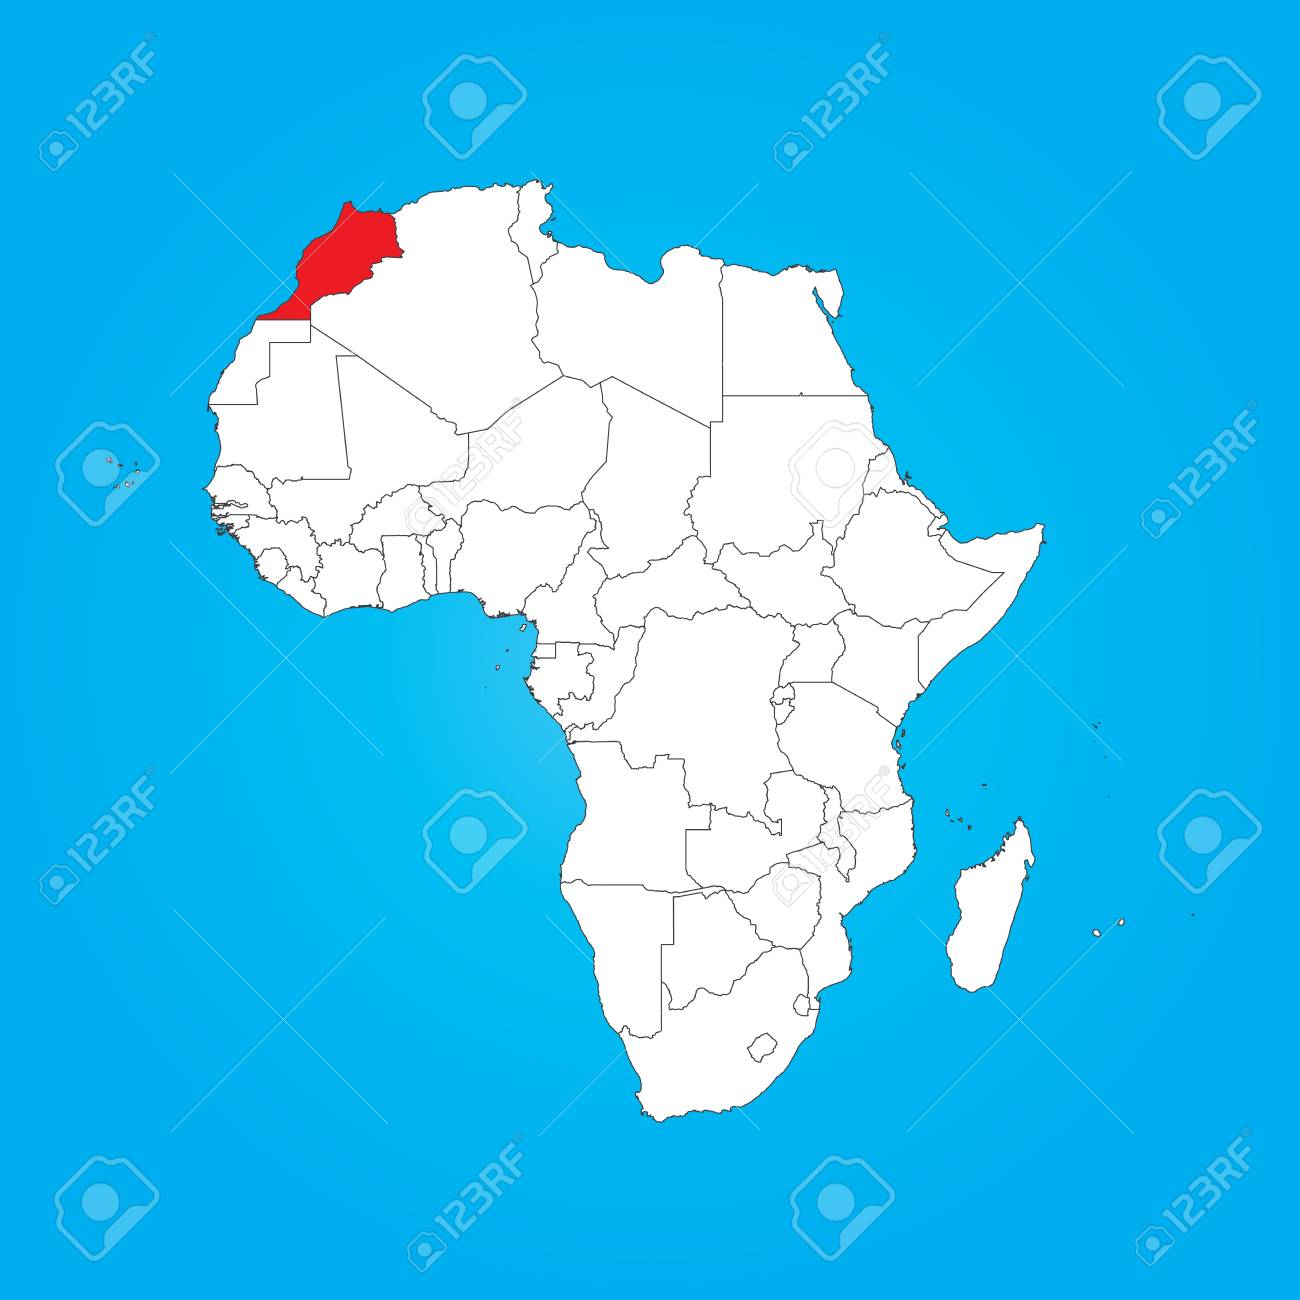 Morocco Map Of Africa.A Map Of Africa With A Selected Country Of Morocco